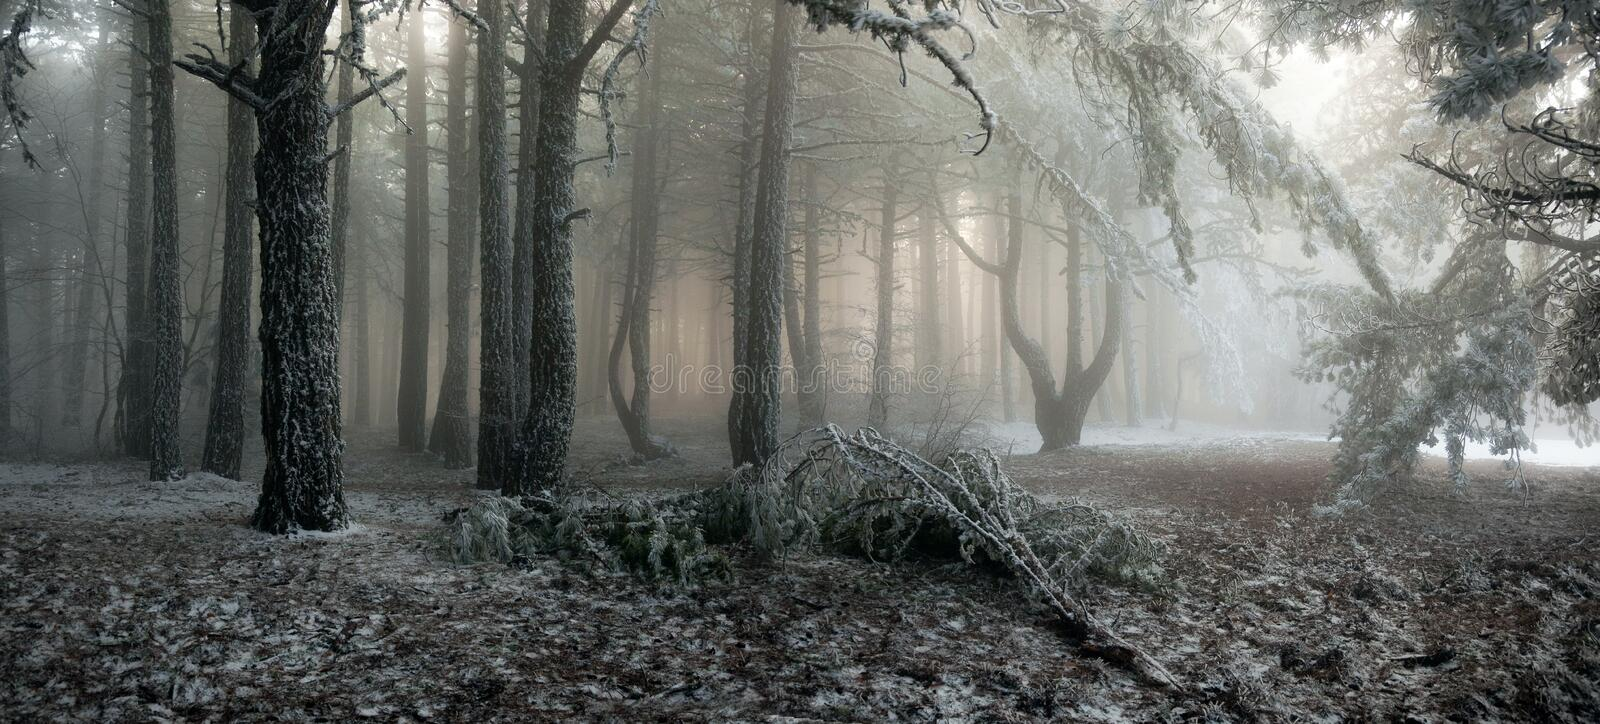 Fog in the forest royalty free stock photos